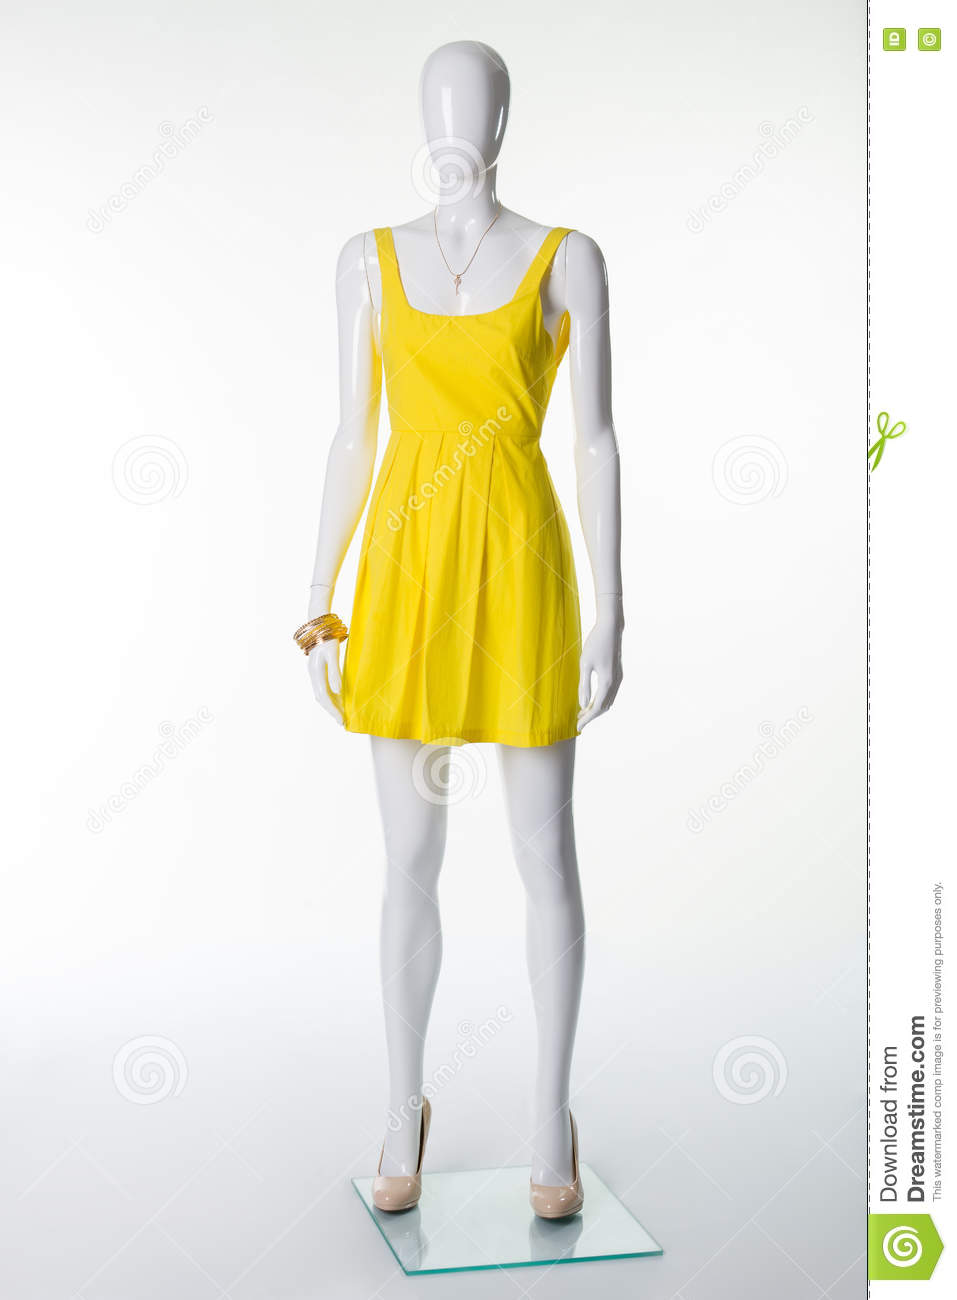 Mannequin In A Yellow Summer Dress And Beige Shoes With Heels. Stock ... 796ea7ea2e